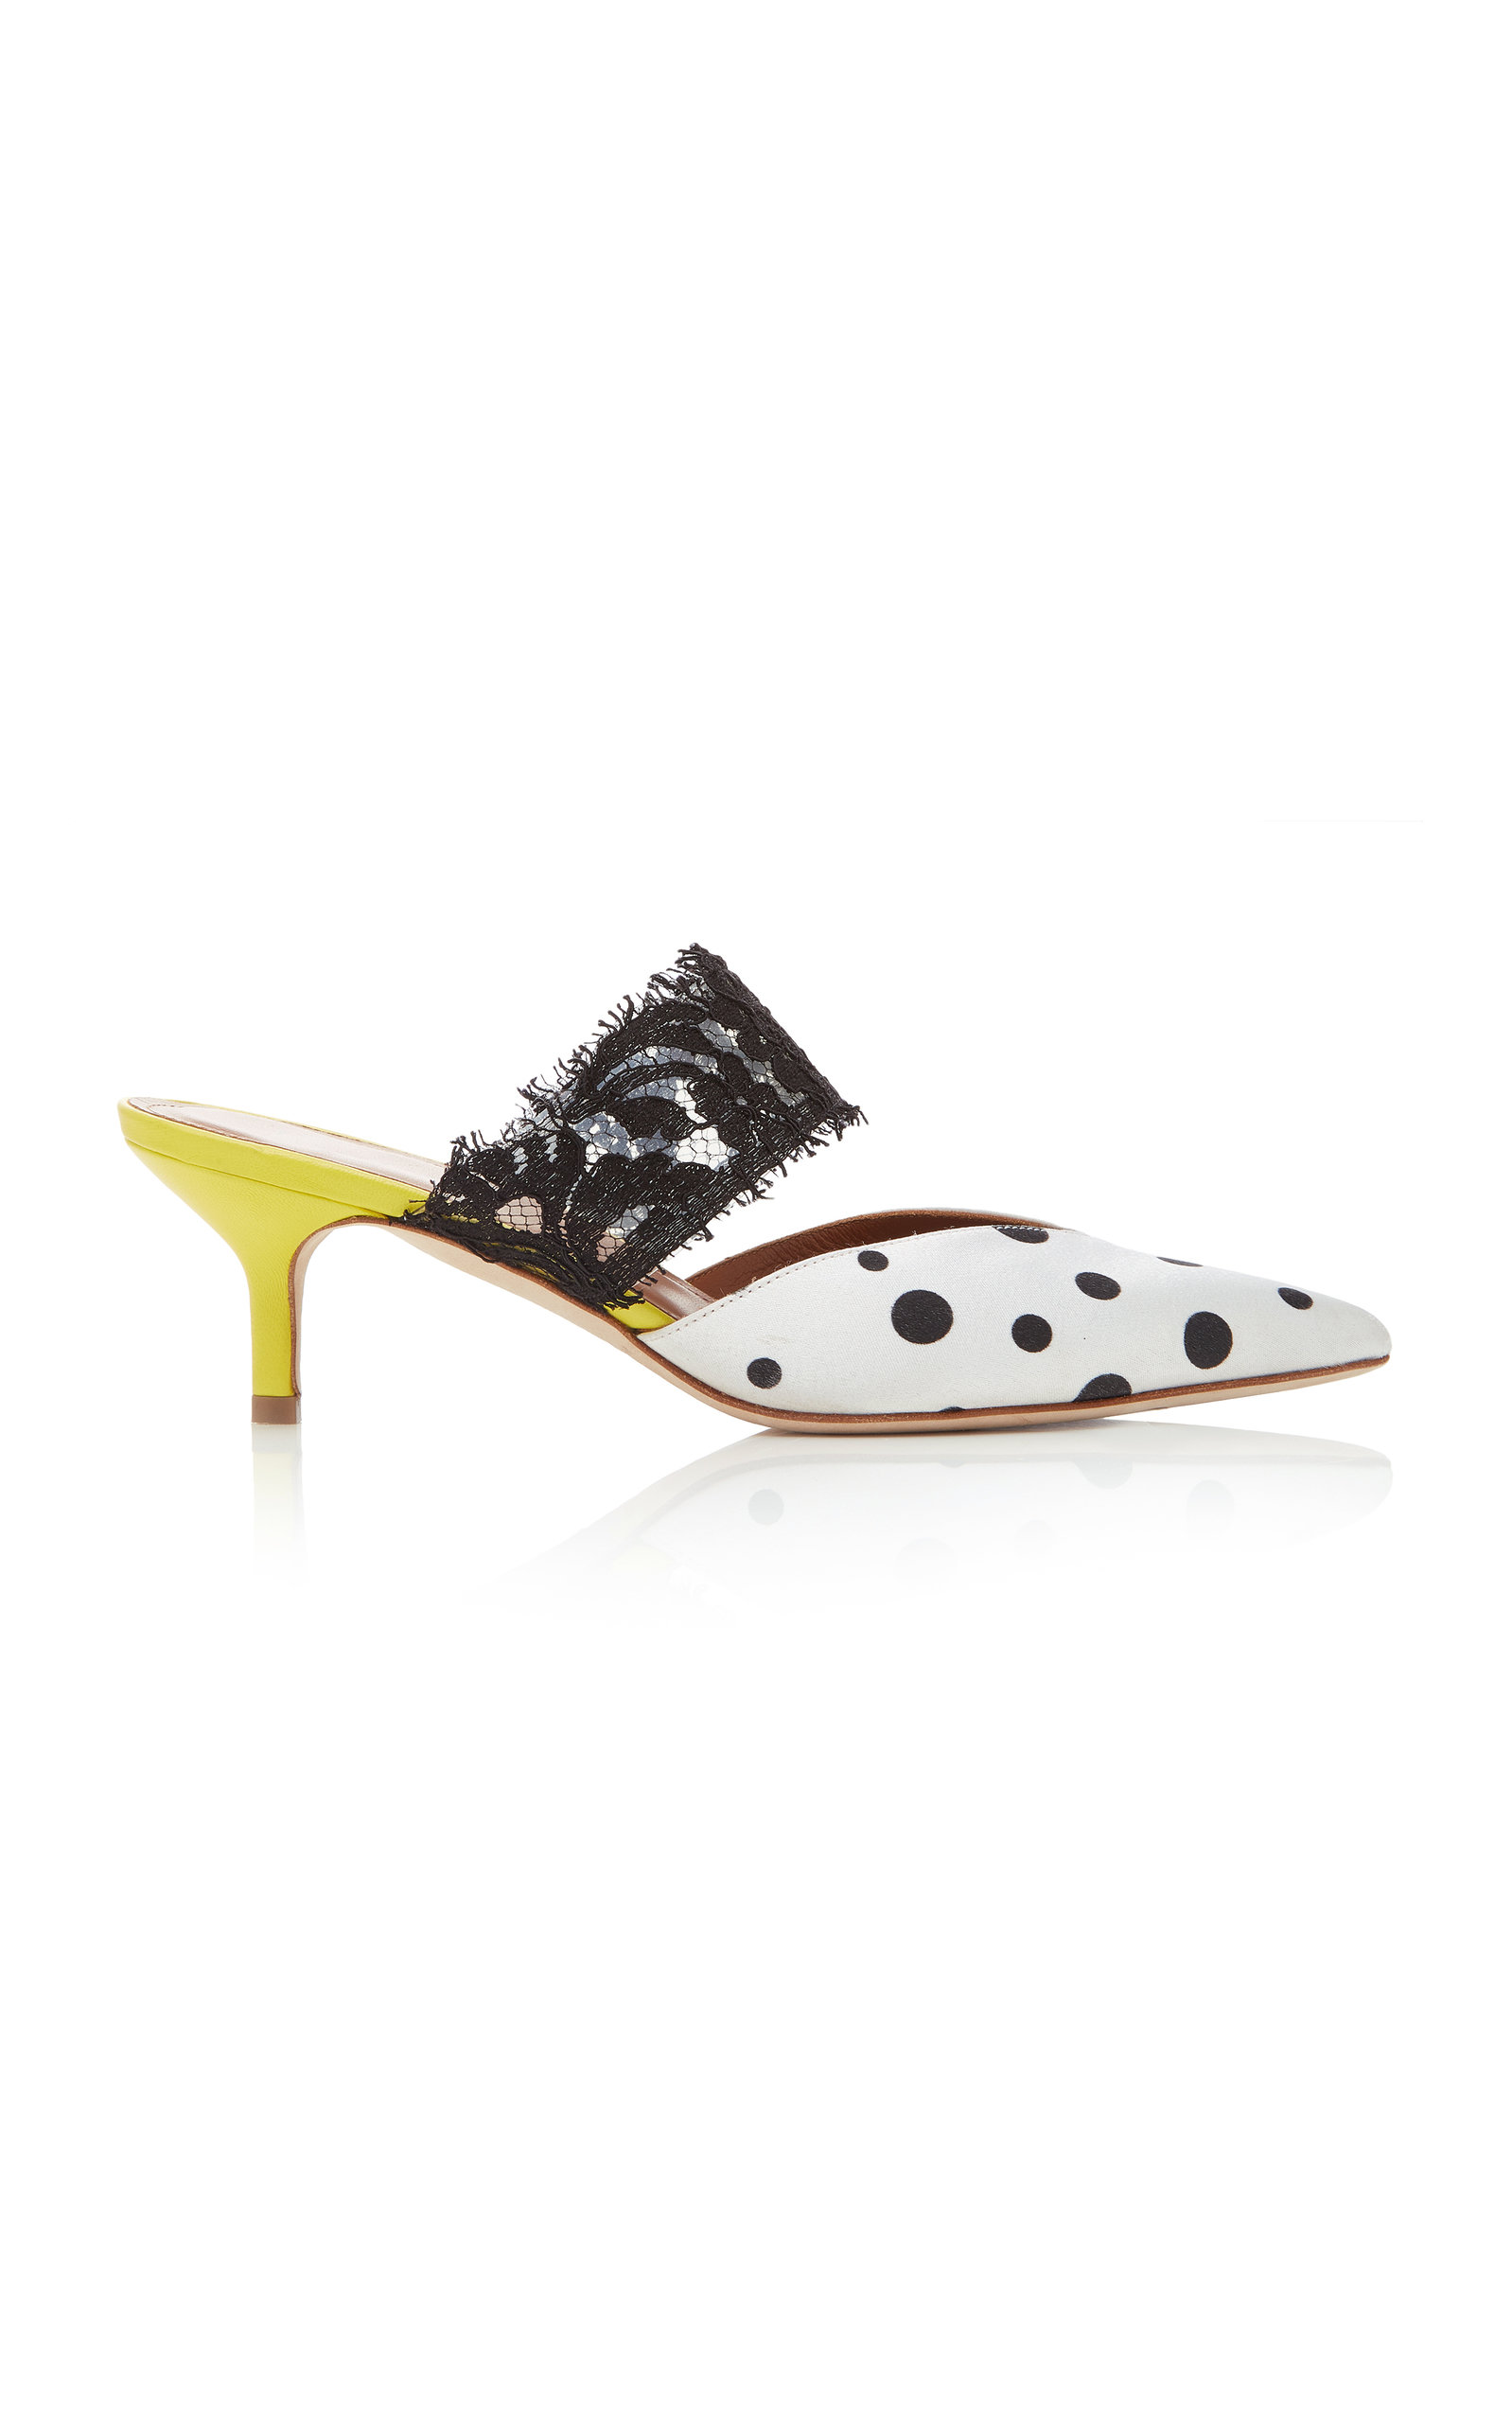 MALONE SOULIERS X EMANUEL UNGARO Maisie Polka-Dot Satin And Lace Mules in Black/White